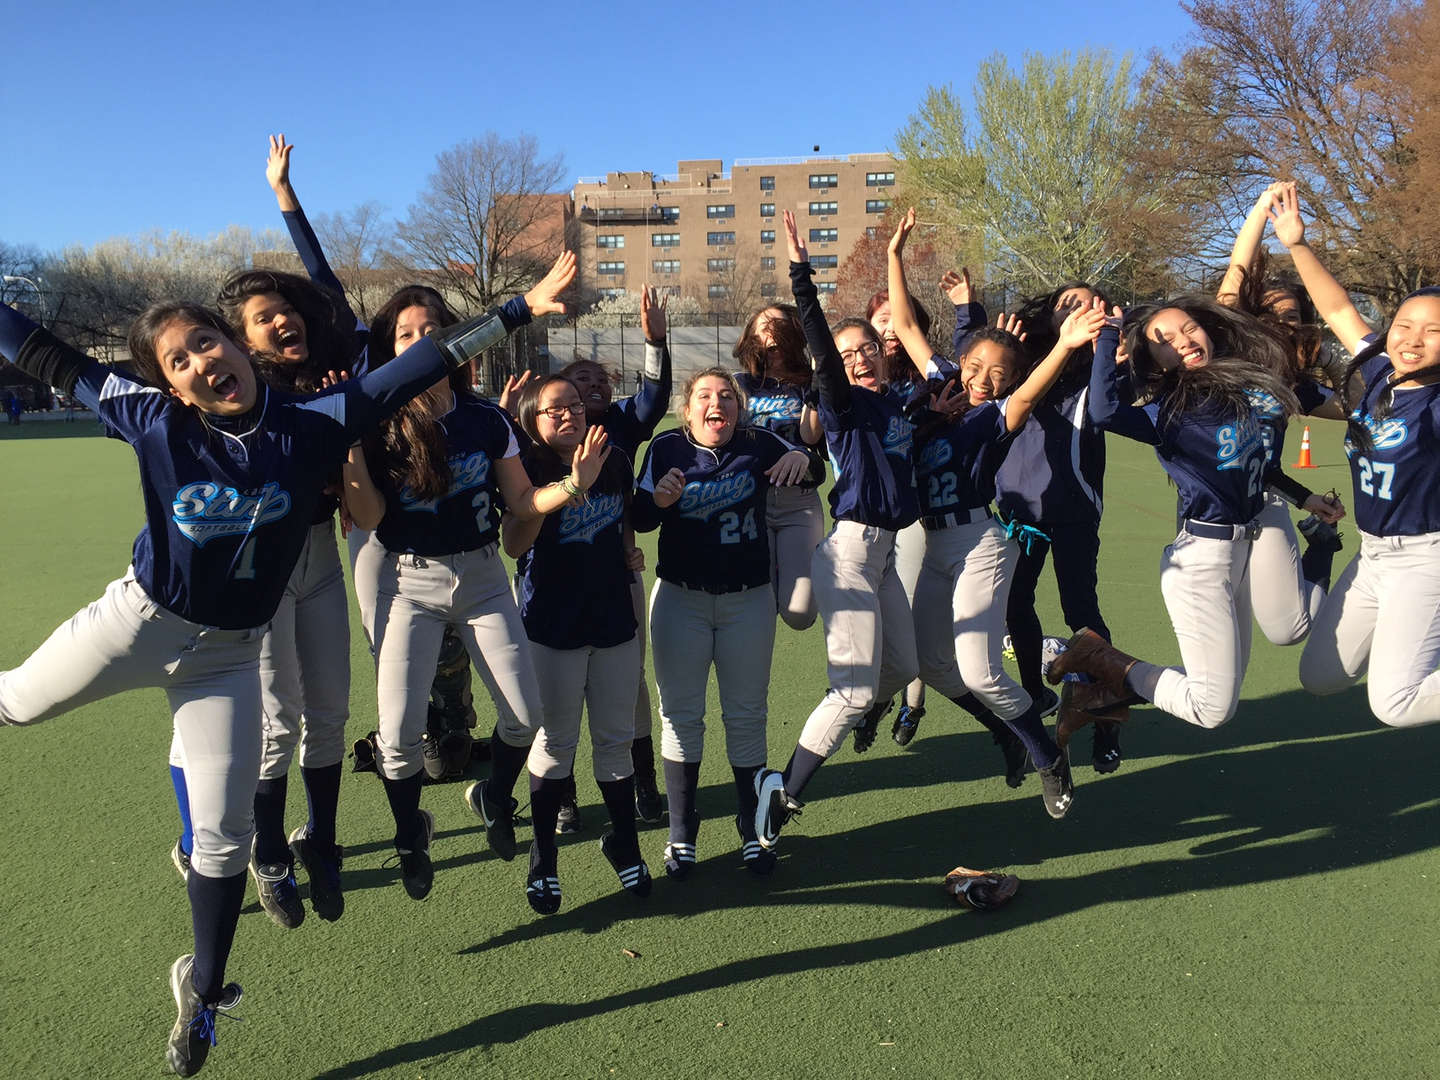 The girls' softball team jumping together